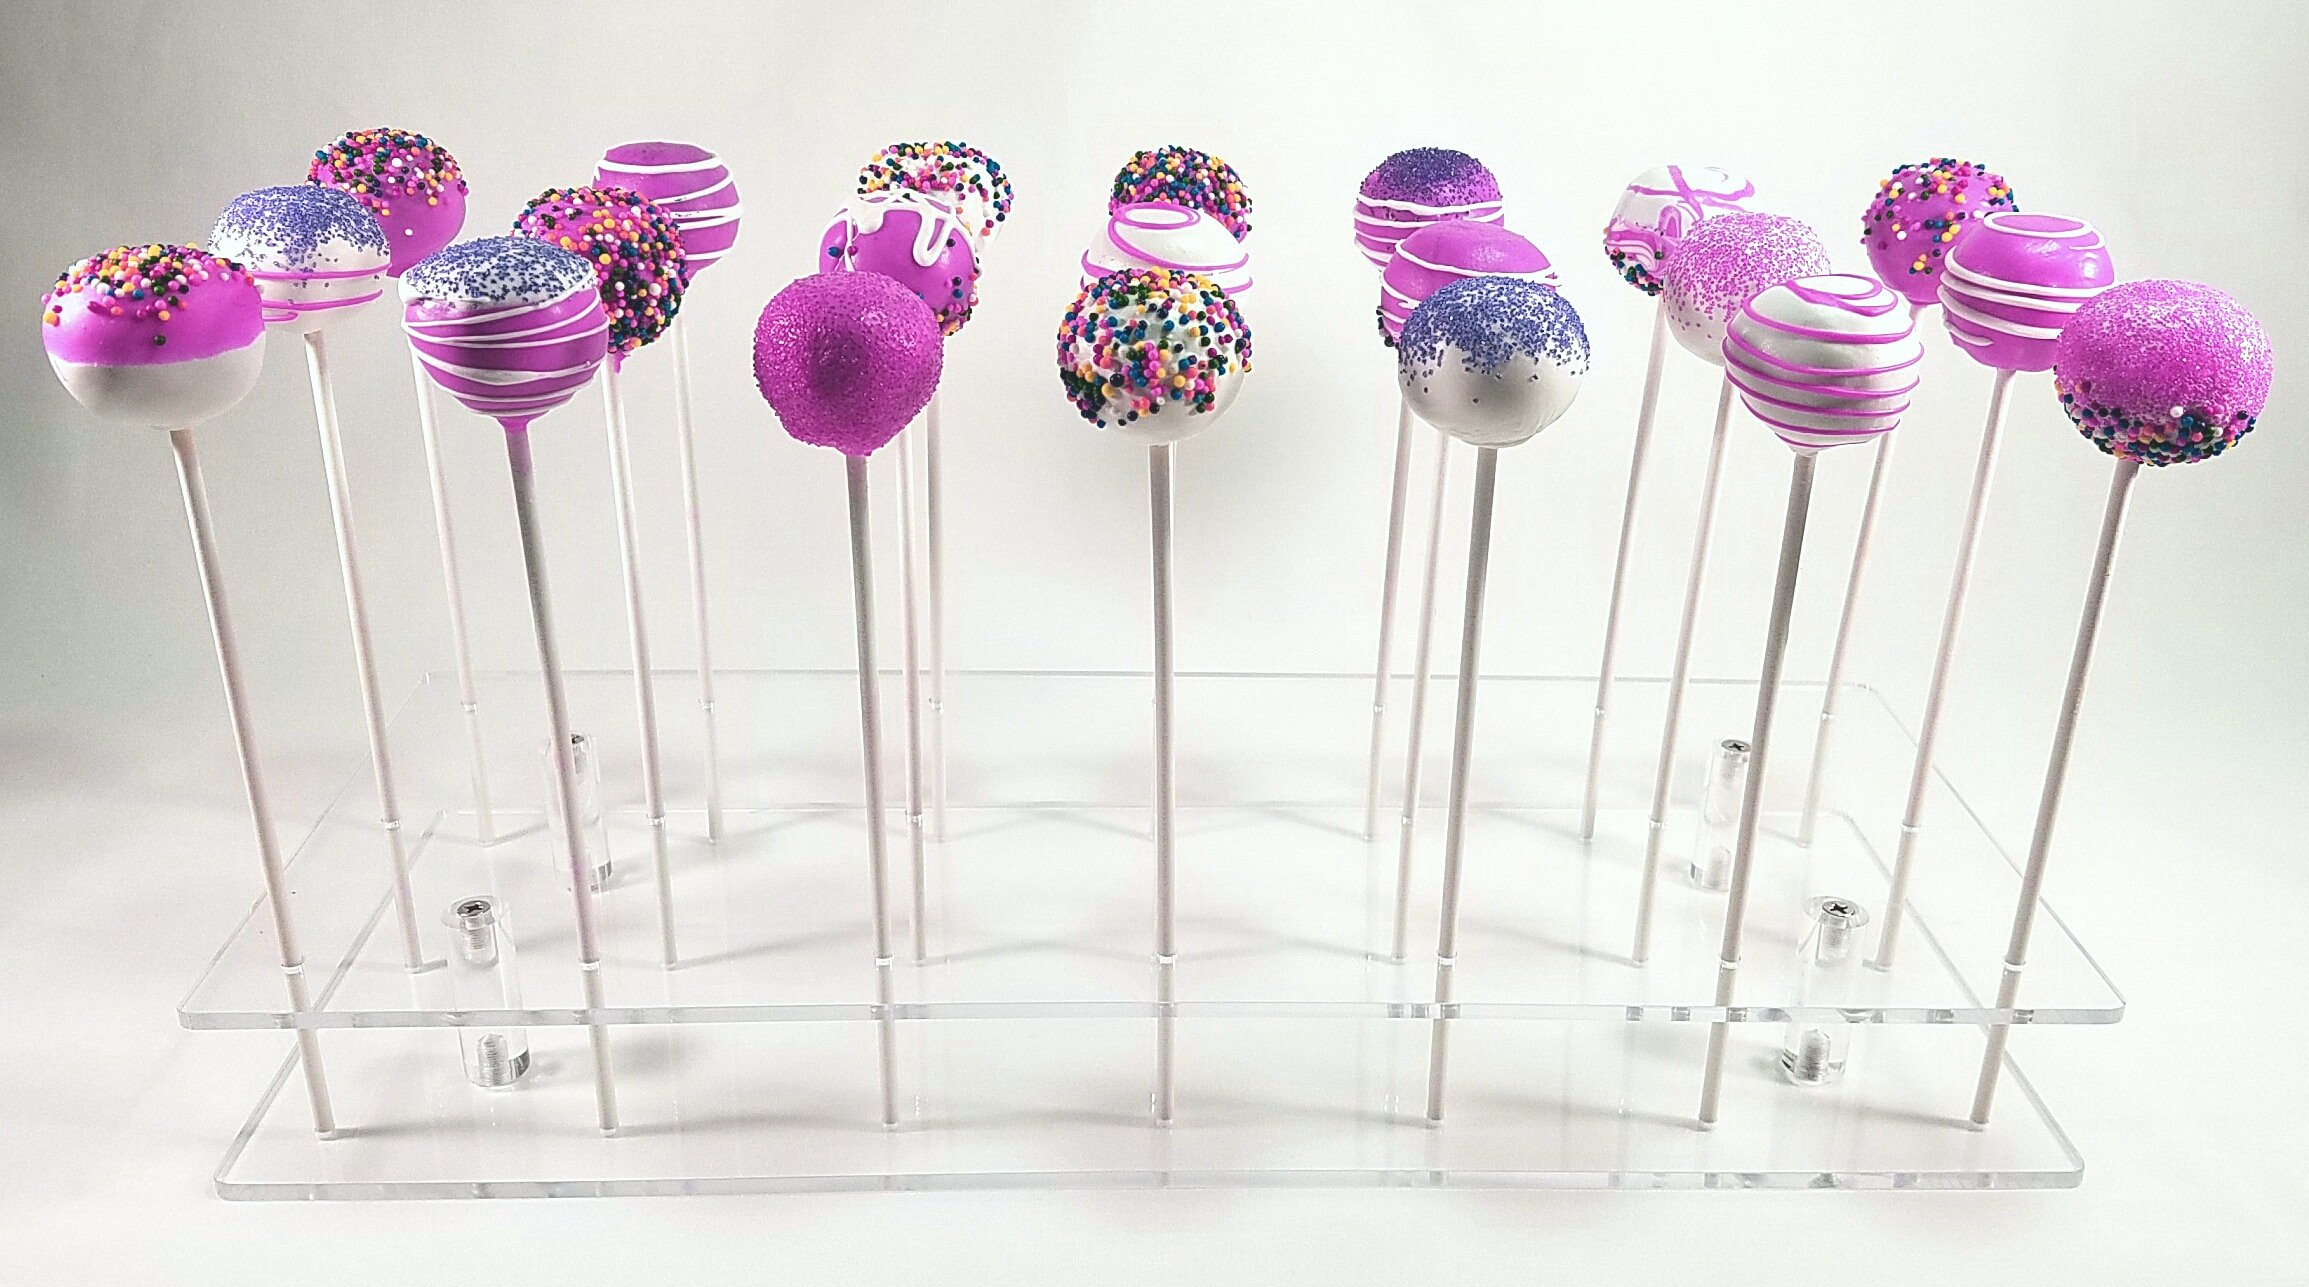 Cake Pop Holder Lollipop Display Stand - 21 Holes - Decorating - Cotton Candy - Mini Donut Cupcake - By KOVIN Acrylics